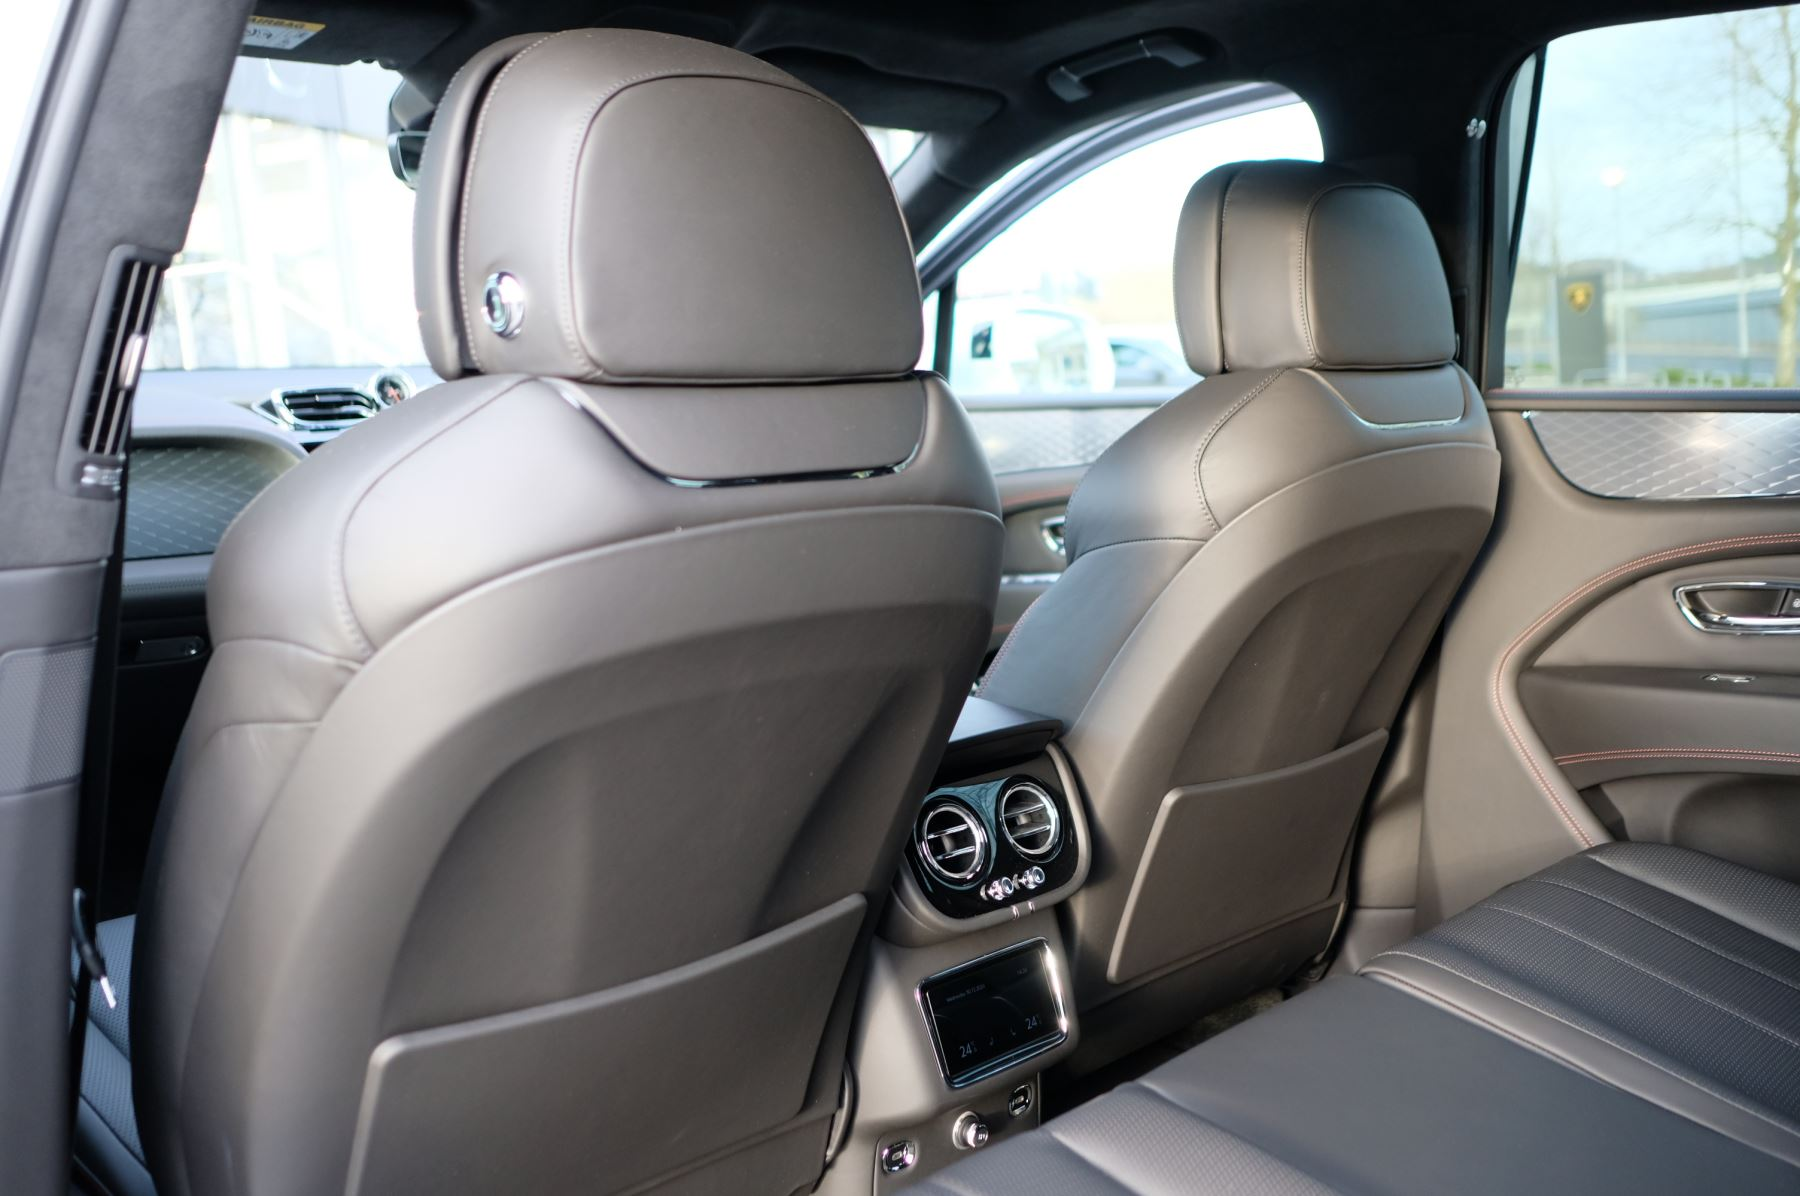 Bentley Bentayga 4.0 V8 - Touring and Front Seat Comfort Specification  image 13